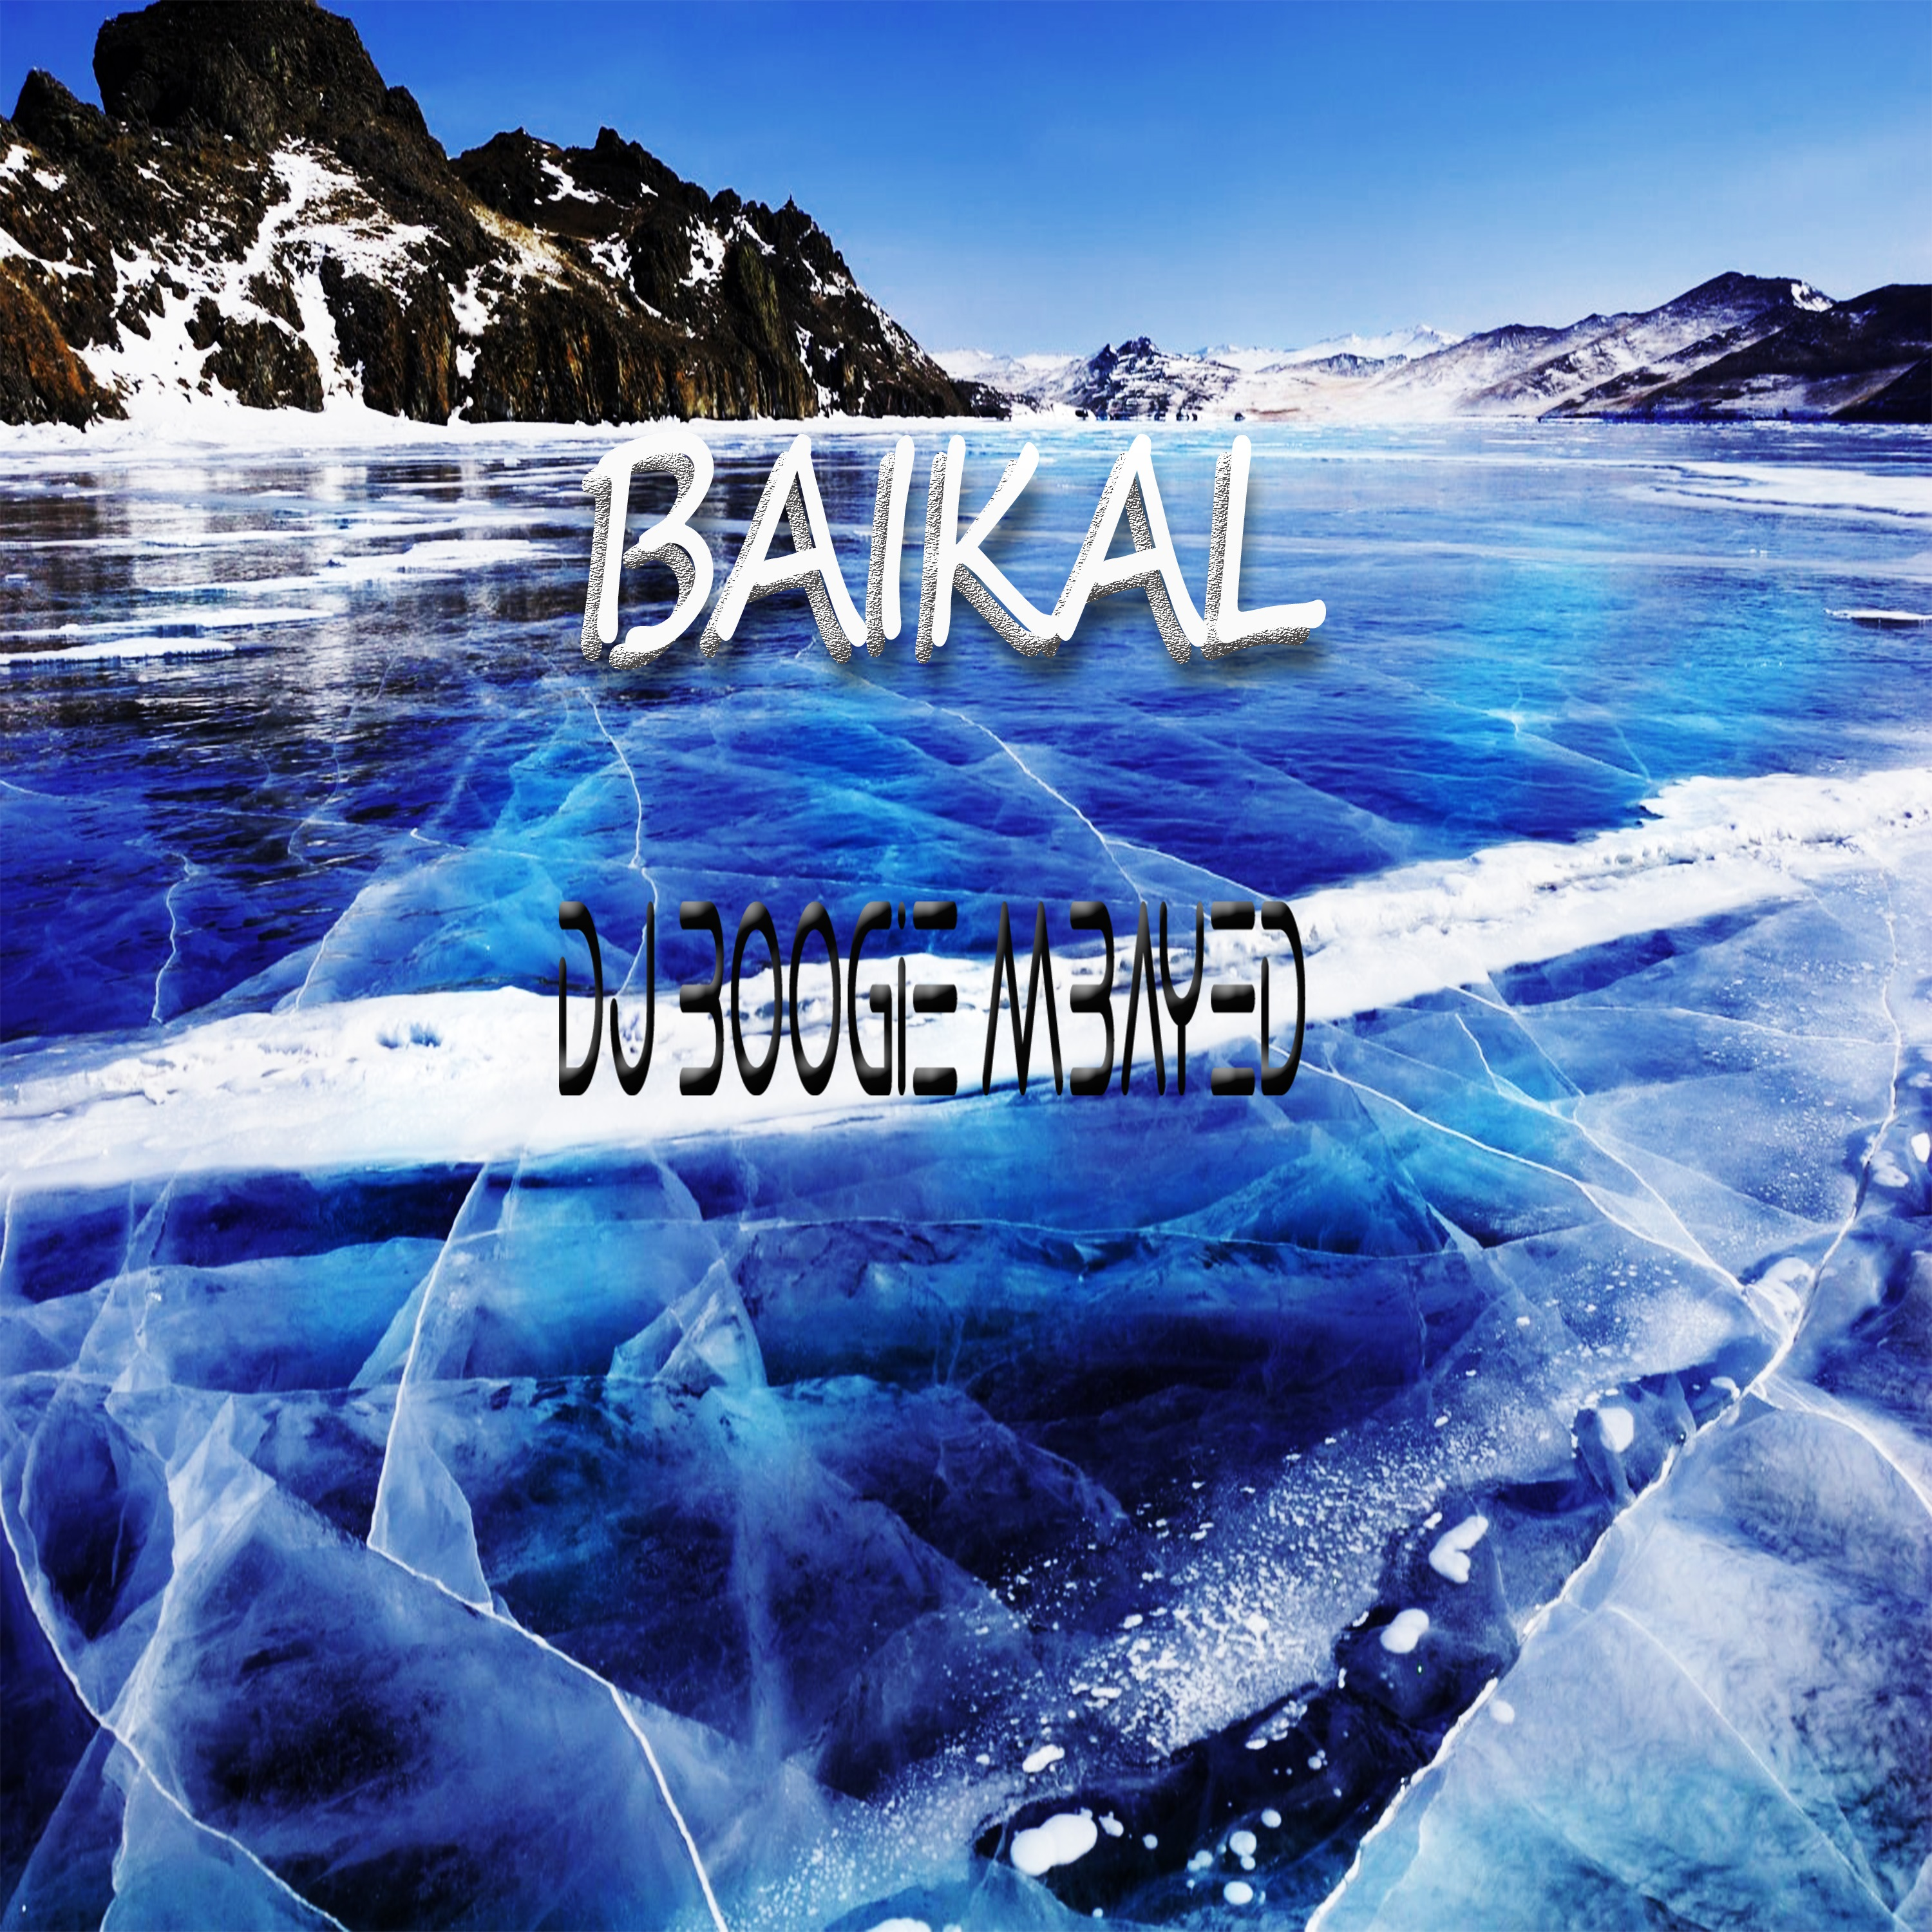 BAIKAL (the deepest lake)- DJ Boogie Mbayed (Original Mix)